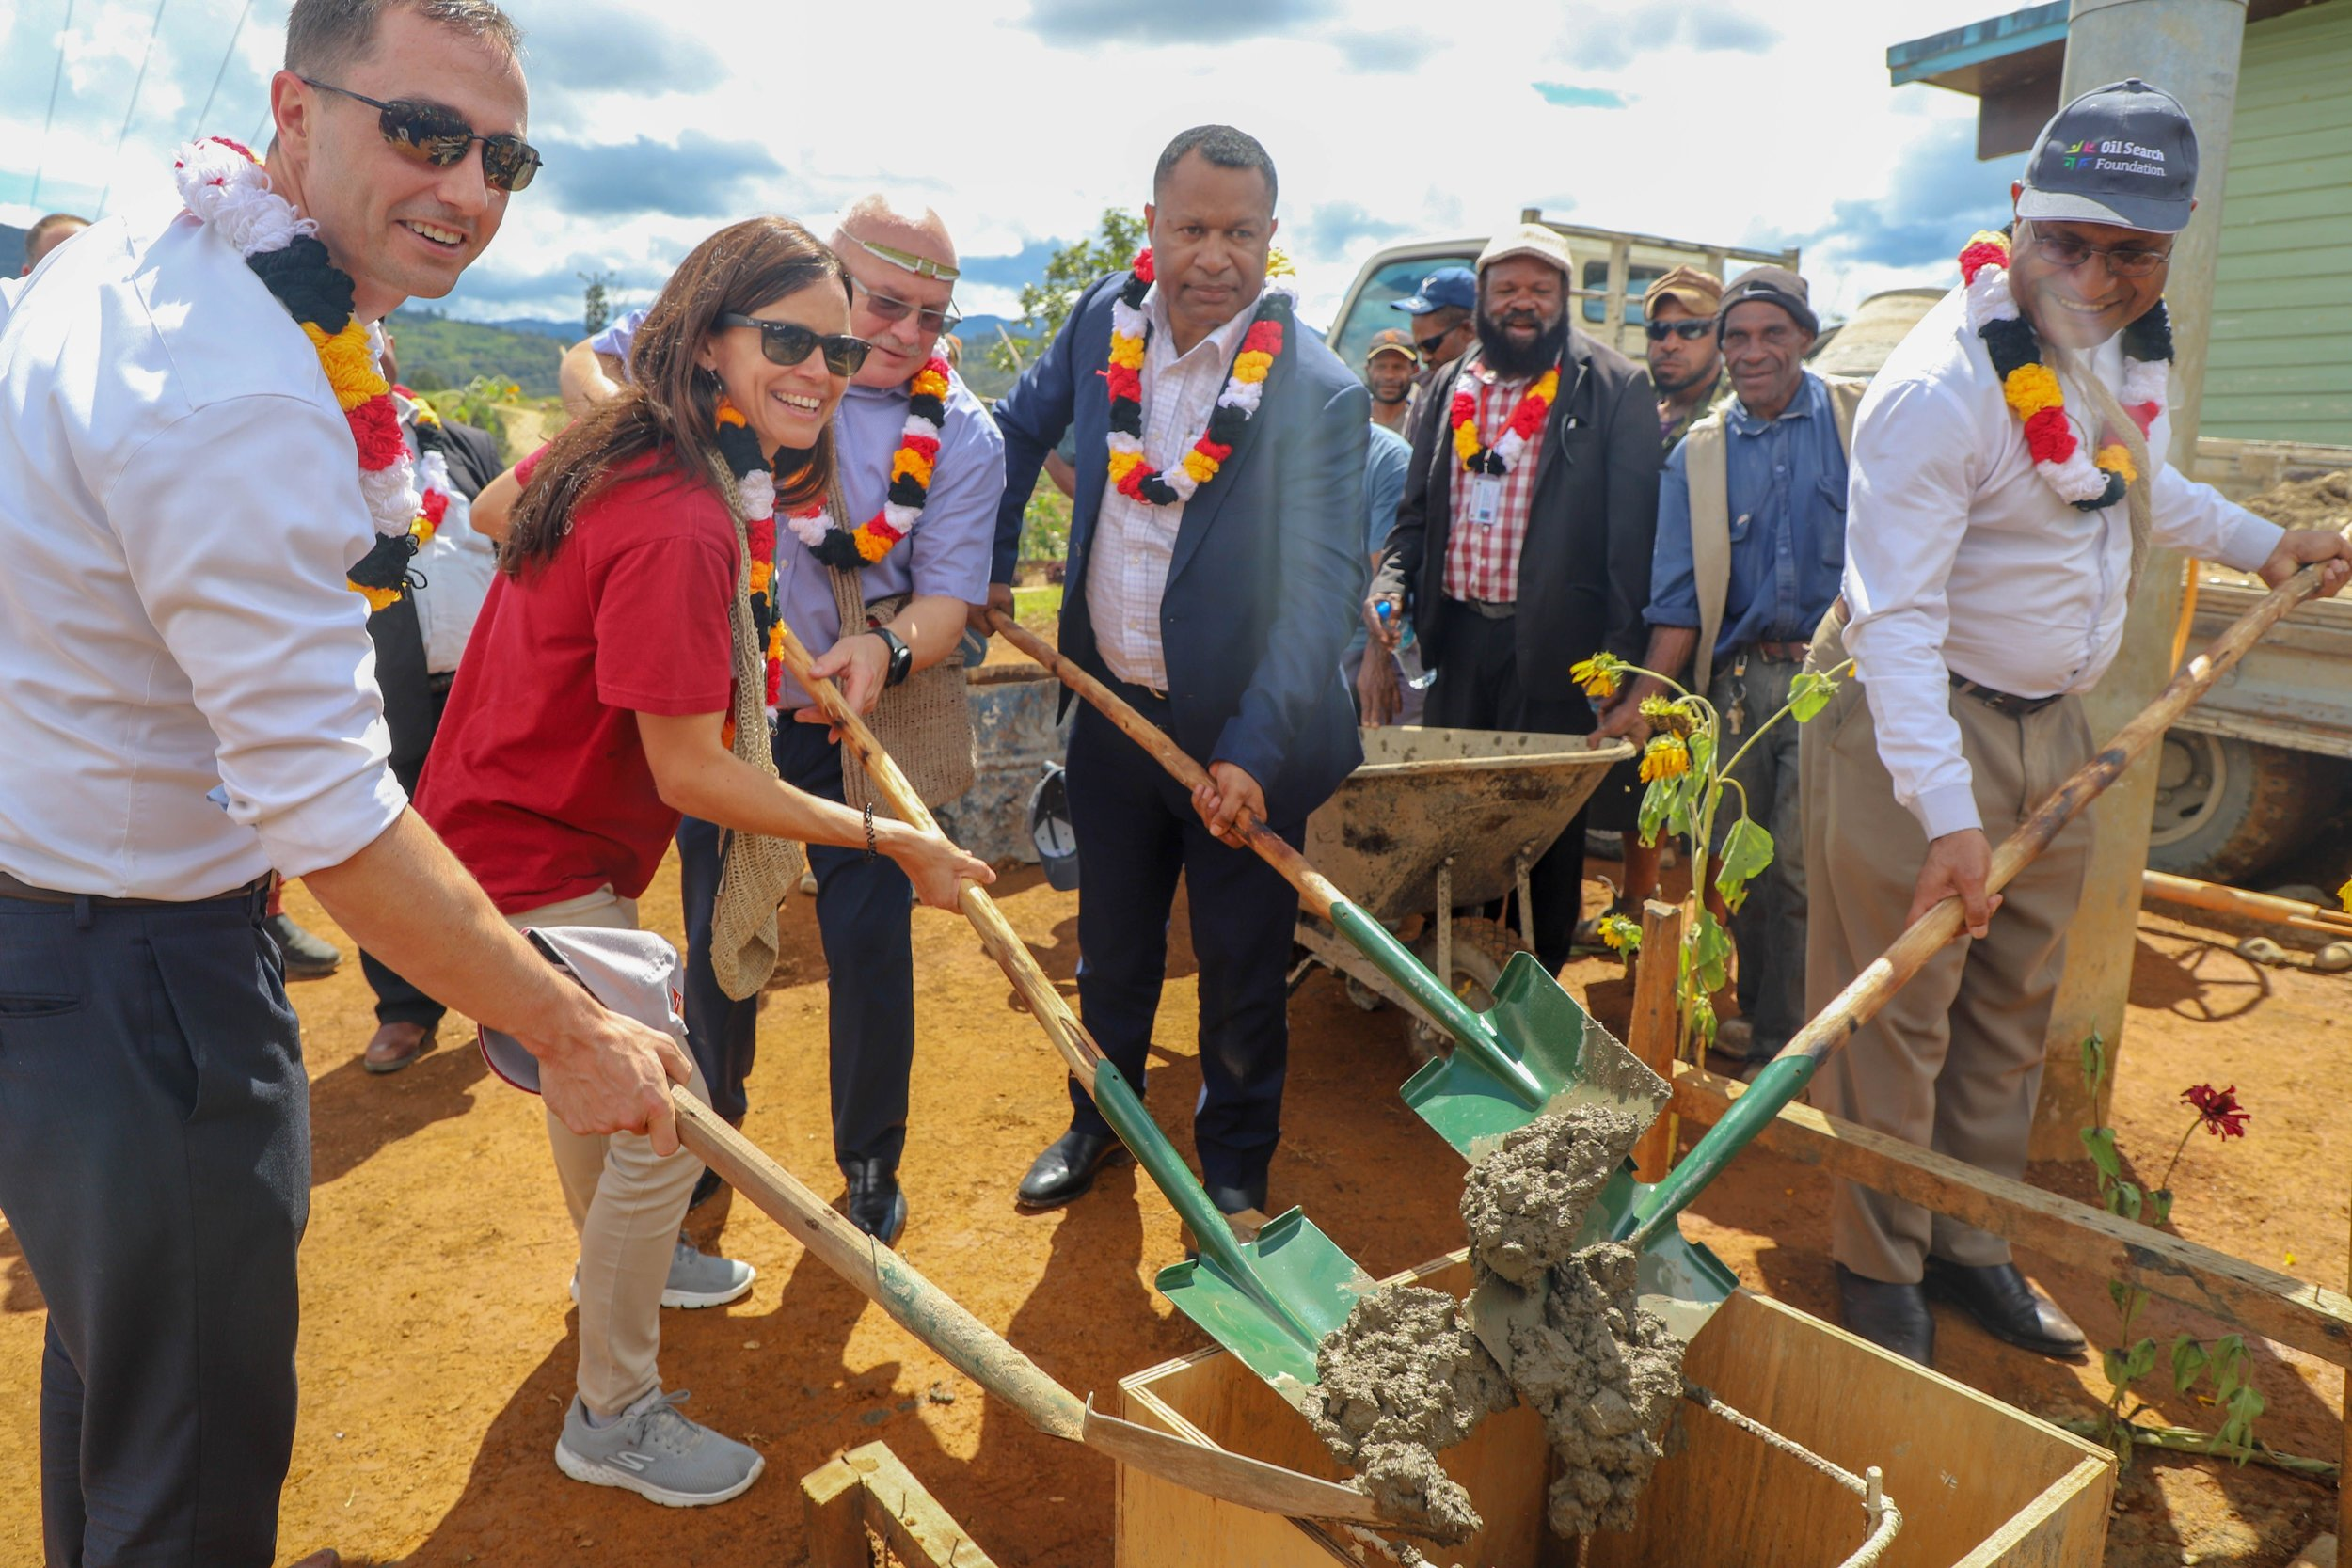 Public Private Partnership at work – William Robinson, Counsellor Health at the Australian High Commission, Stephanie Copus-Campbell – executive director Oil Search Foundation and Hela Provincial Health Authority chairman Peter Botten, Koroba Kopiago MP and Immigration and Border Security Minister Petrus Thomas and Hela Provincial Health Authority CEO Dr James Kintwa lay the foundation of the x-ray building at the Koroba district hospital.